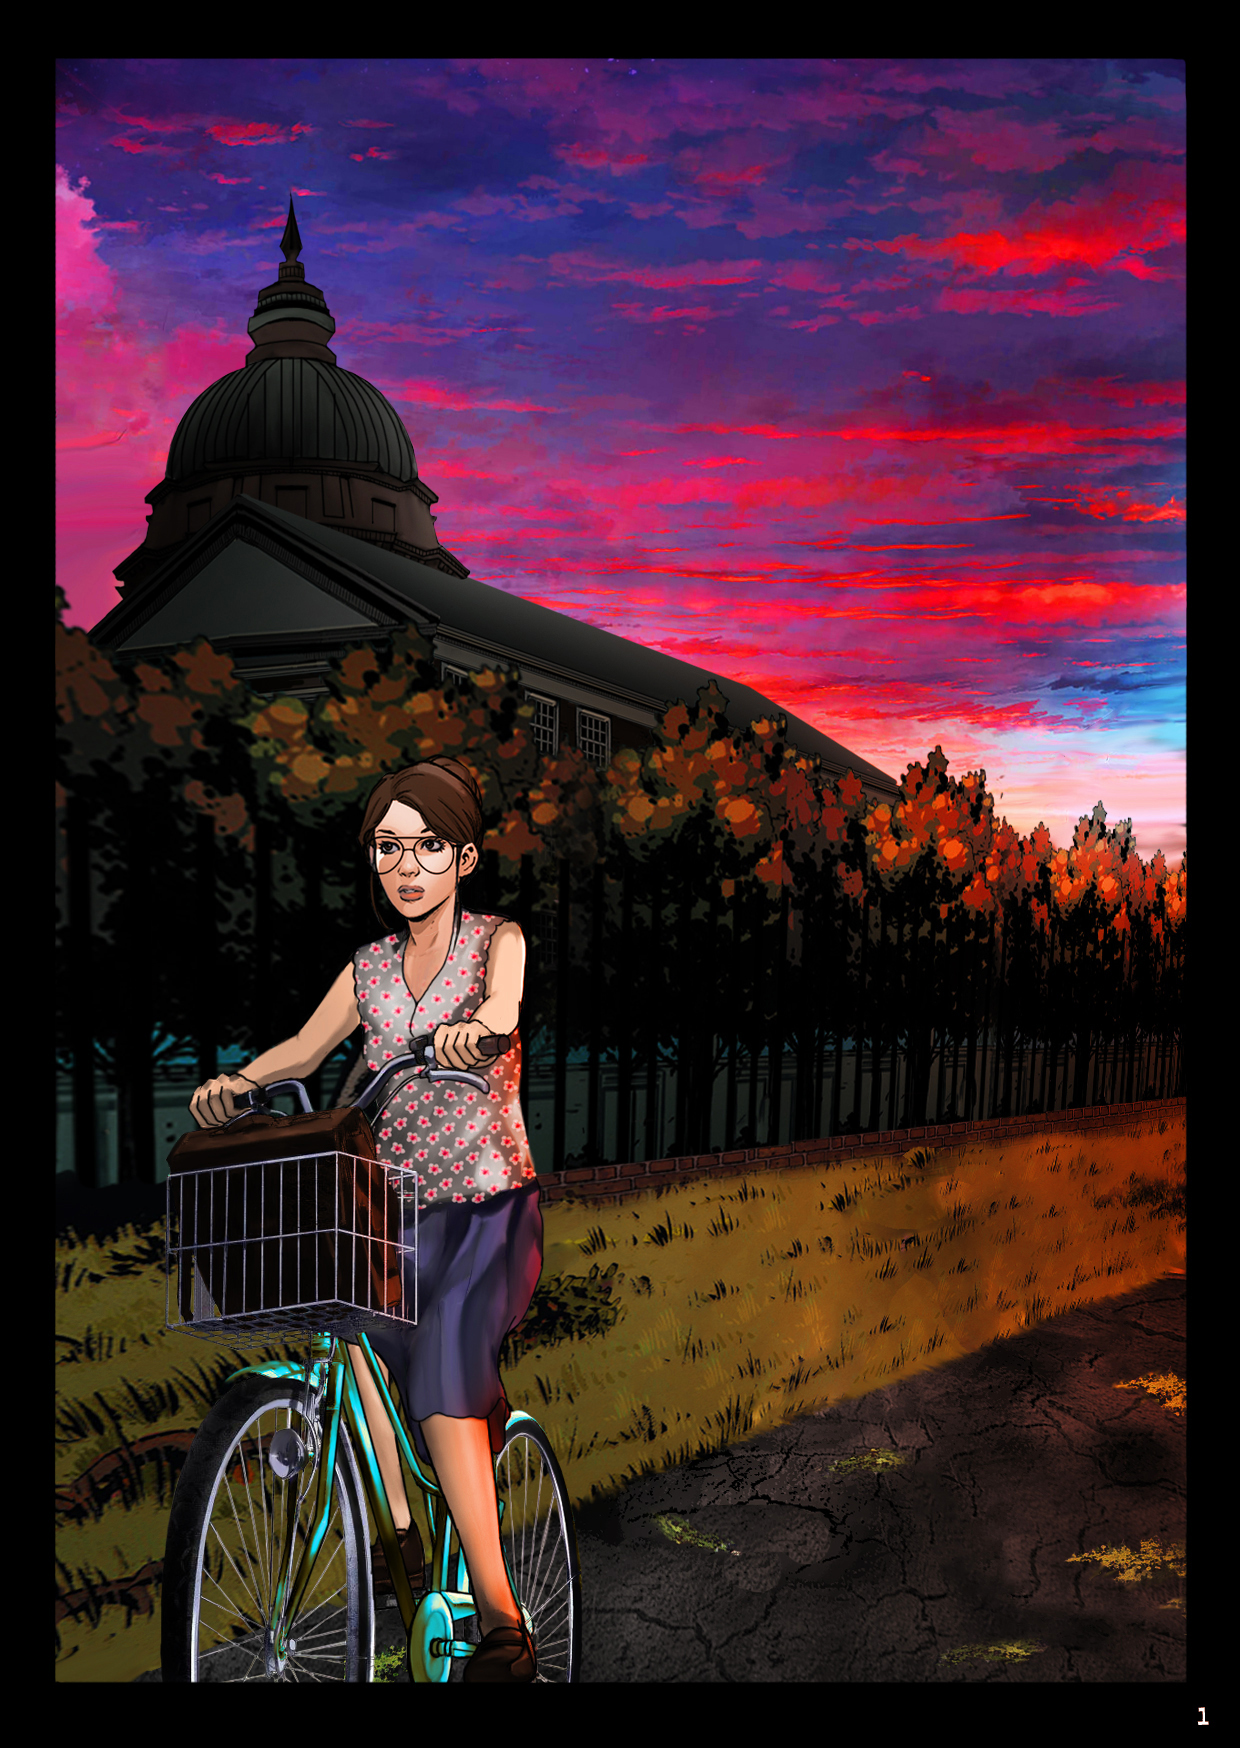 Brenda rides her bicycle alone at dusk out to the scary asylum.